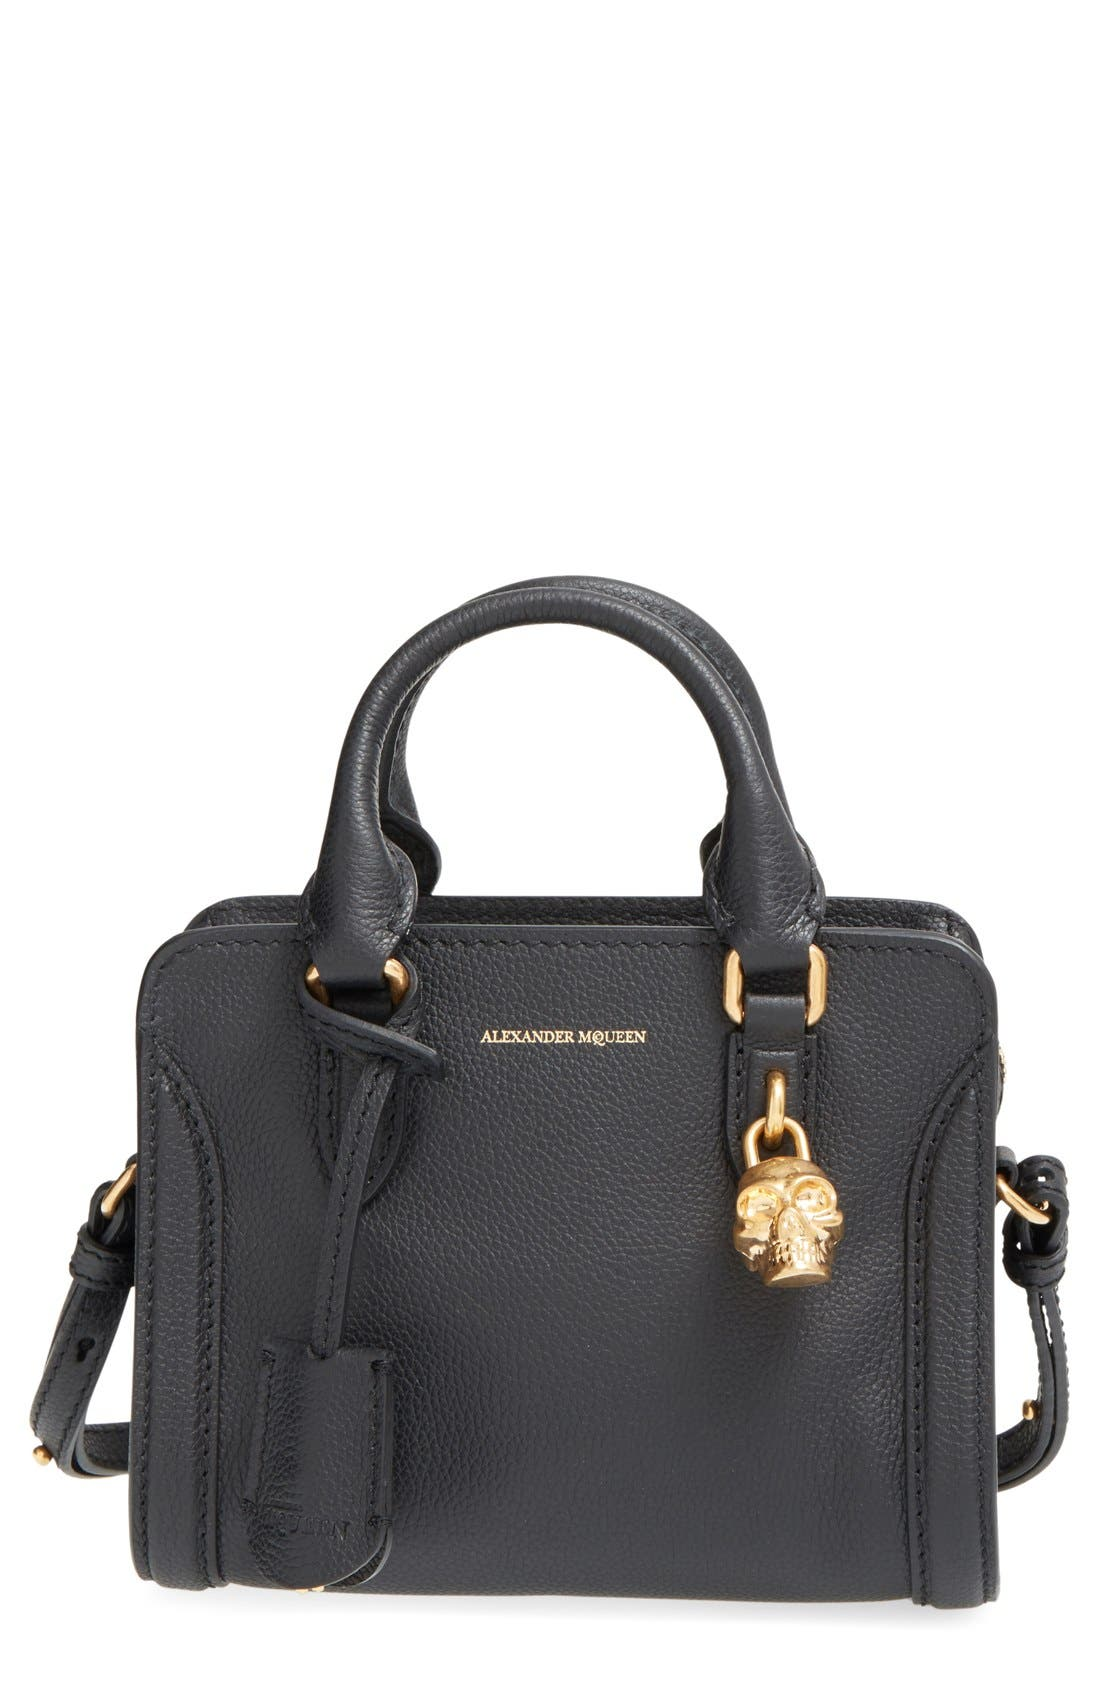 Alternate Image 1 Selected - Alexander McQueen 'Mini Padlock' Calfskin Leather Satchel